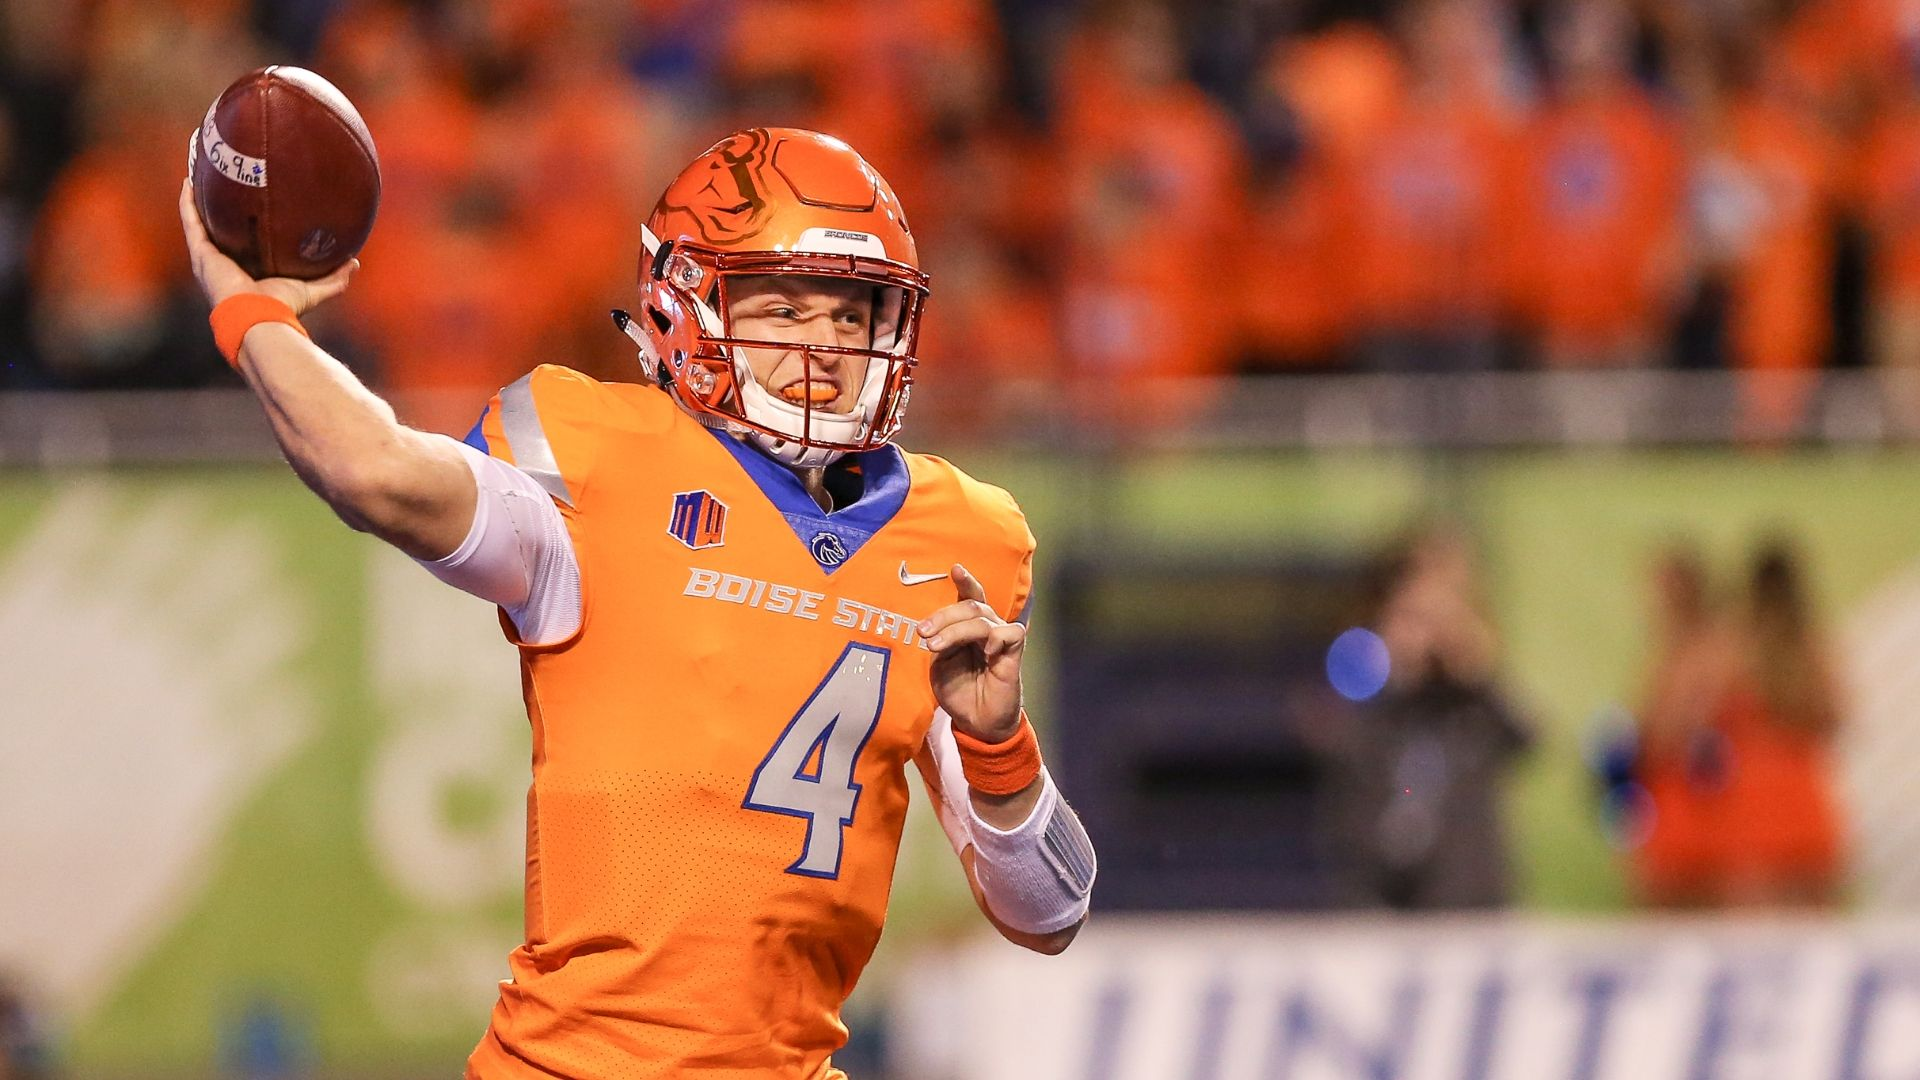 Rypien, defense show off for Boise State